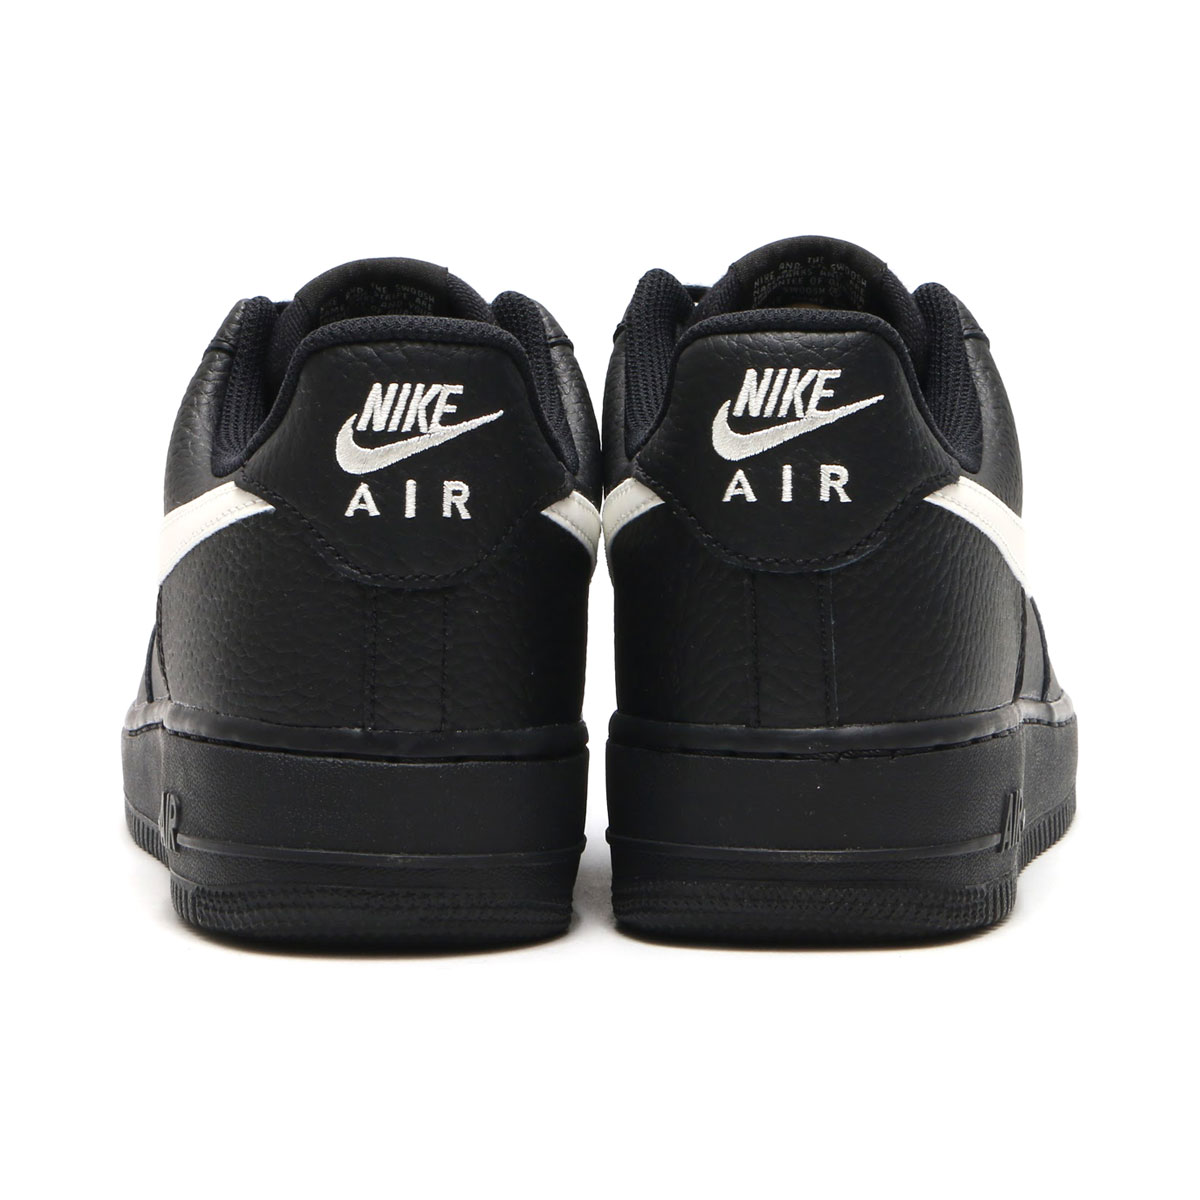 faf1194a0a2 atmos pink  NIKE AIR FORCE 1  07 (Nike air force 1 07) (BLACK SAIL ...